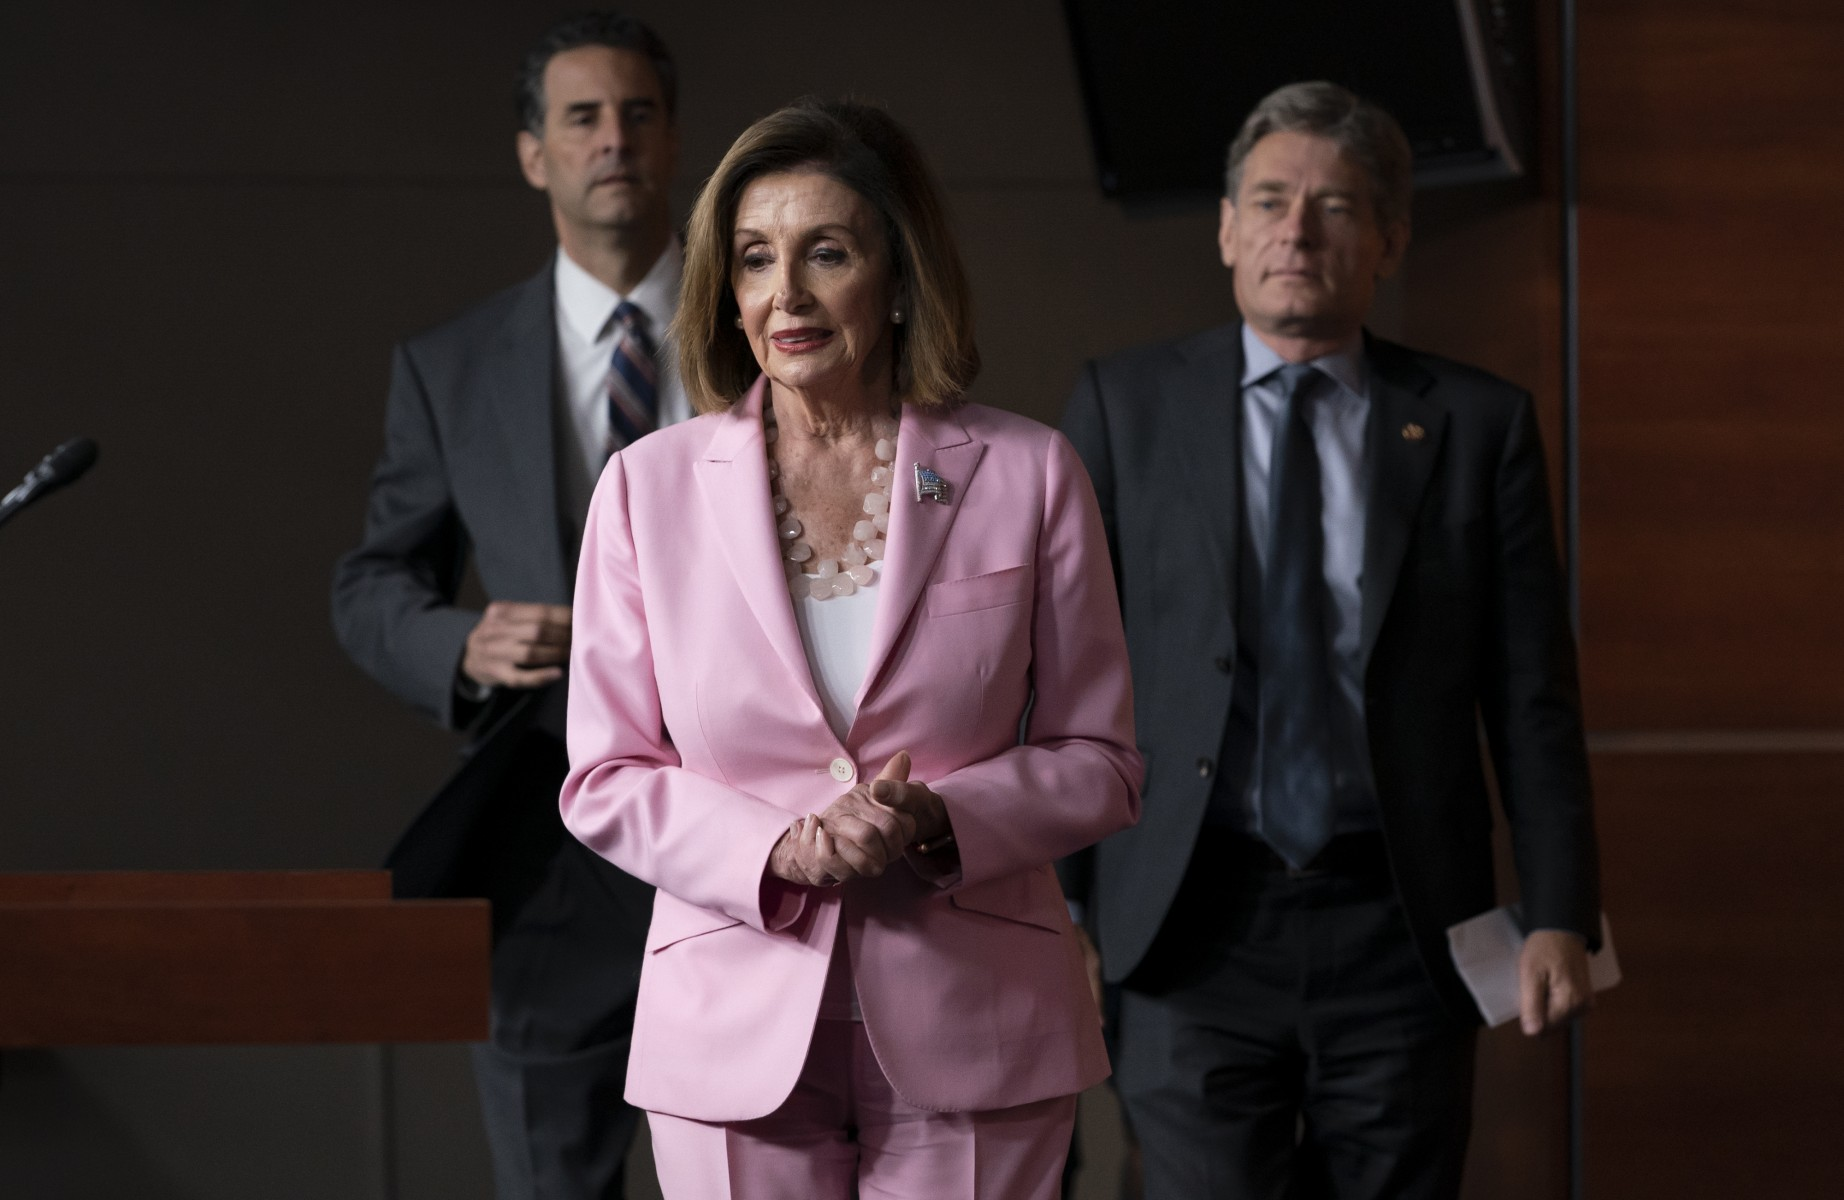 Speaker of the House Nancy Pelosi, D-Calif., joined by Rep. John Sarbanes, D-Md., left, and  Rep. Tom Malinowski, D-N.J., leads House Democrats to discuss H.R. 1, The For the People Act, which passed in the House but is being held up in the Senate, at the Capitol in Washington, Friday, Sept. 27, 2019.   (AP Photo/J. Scott Applewhite)